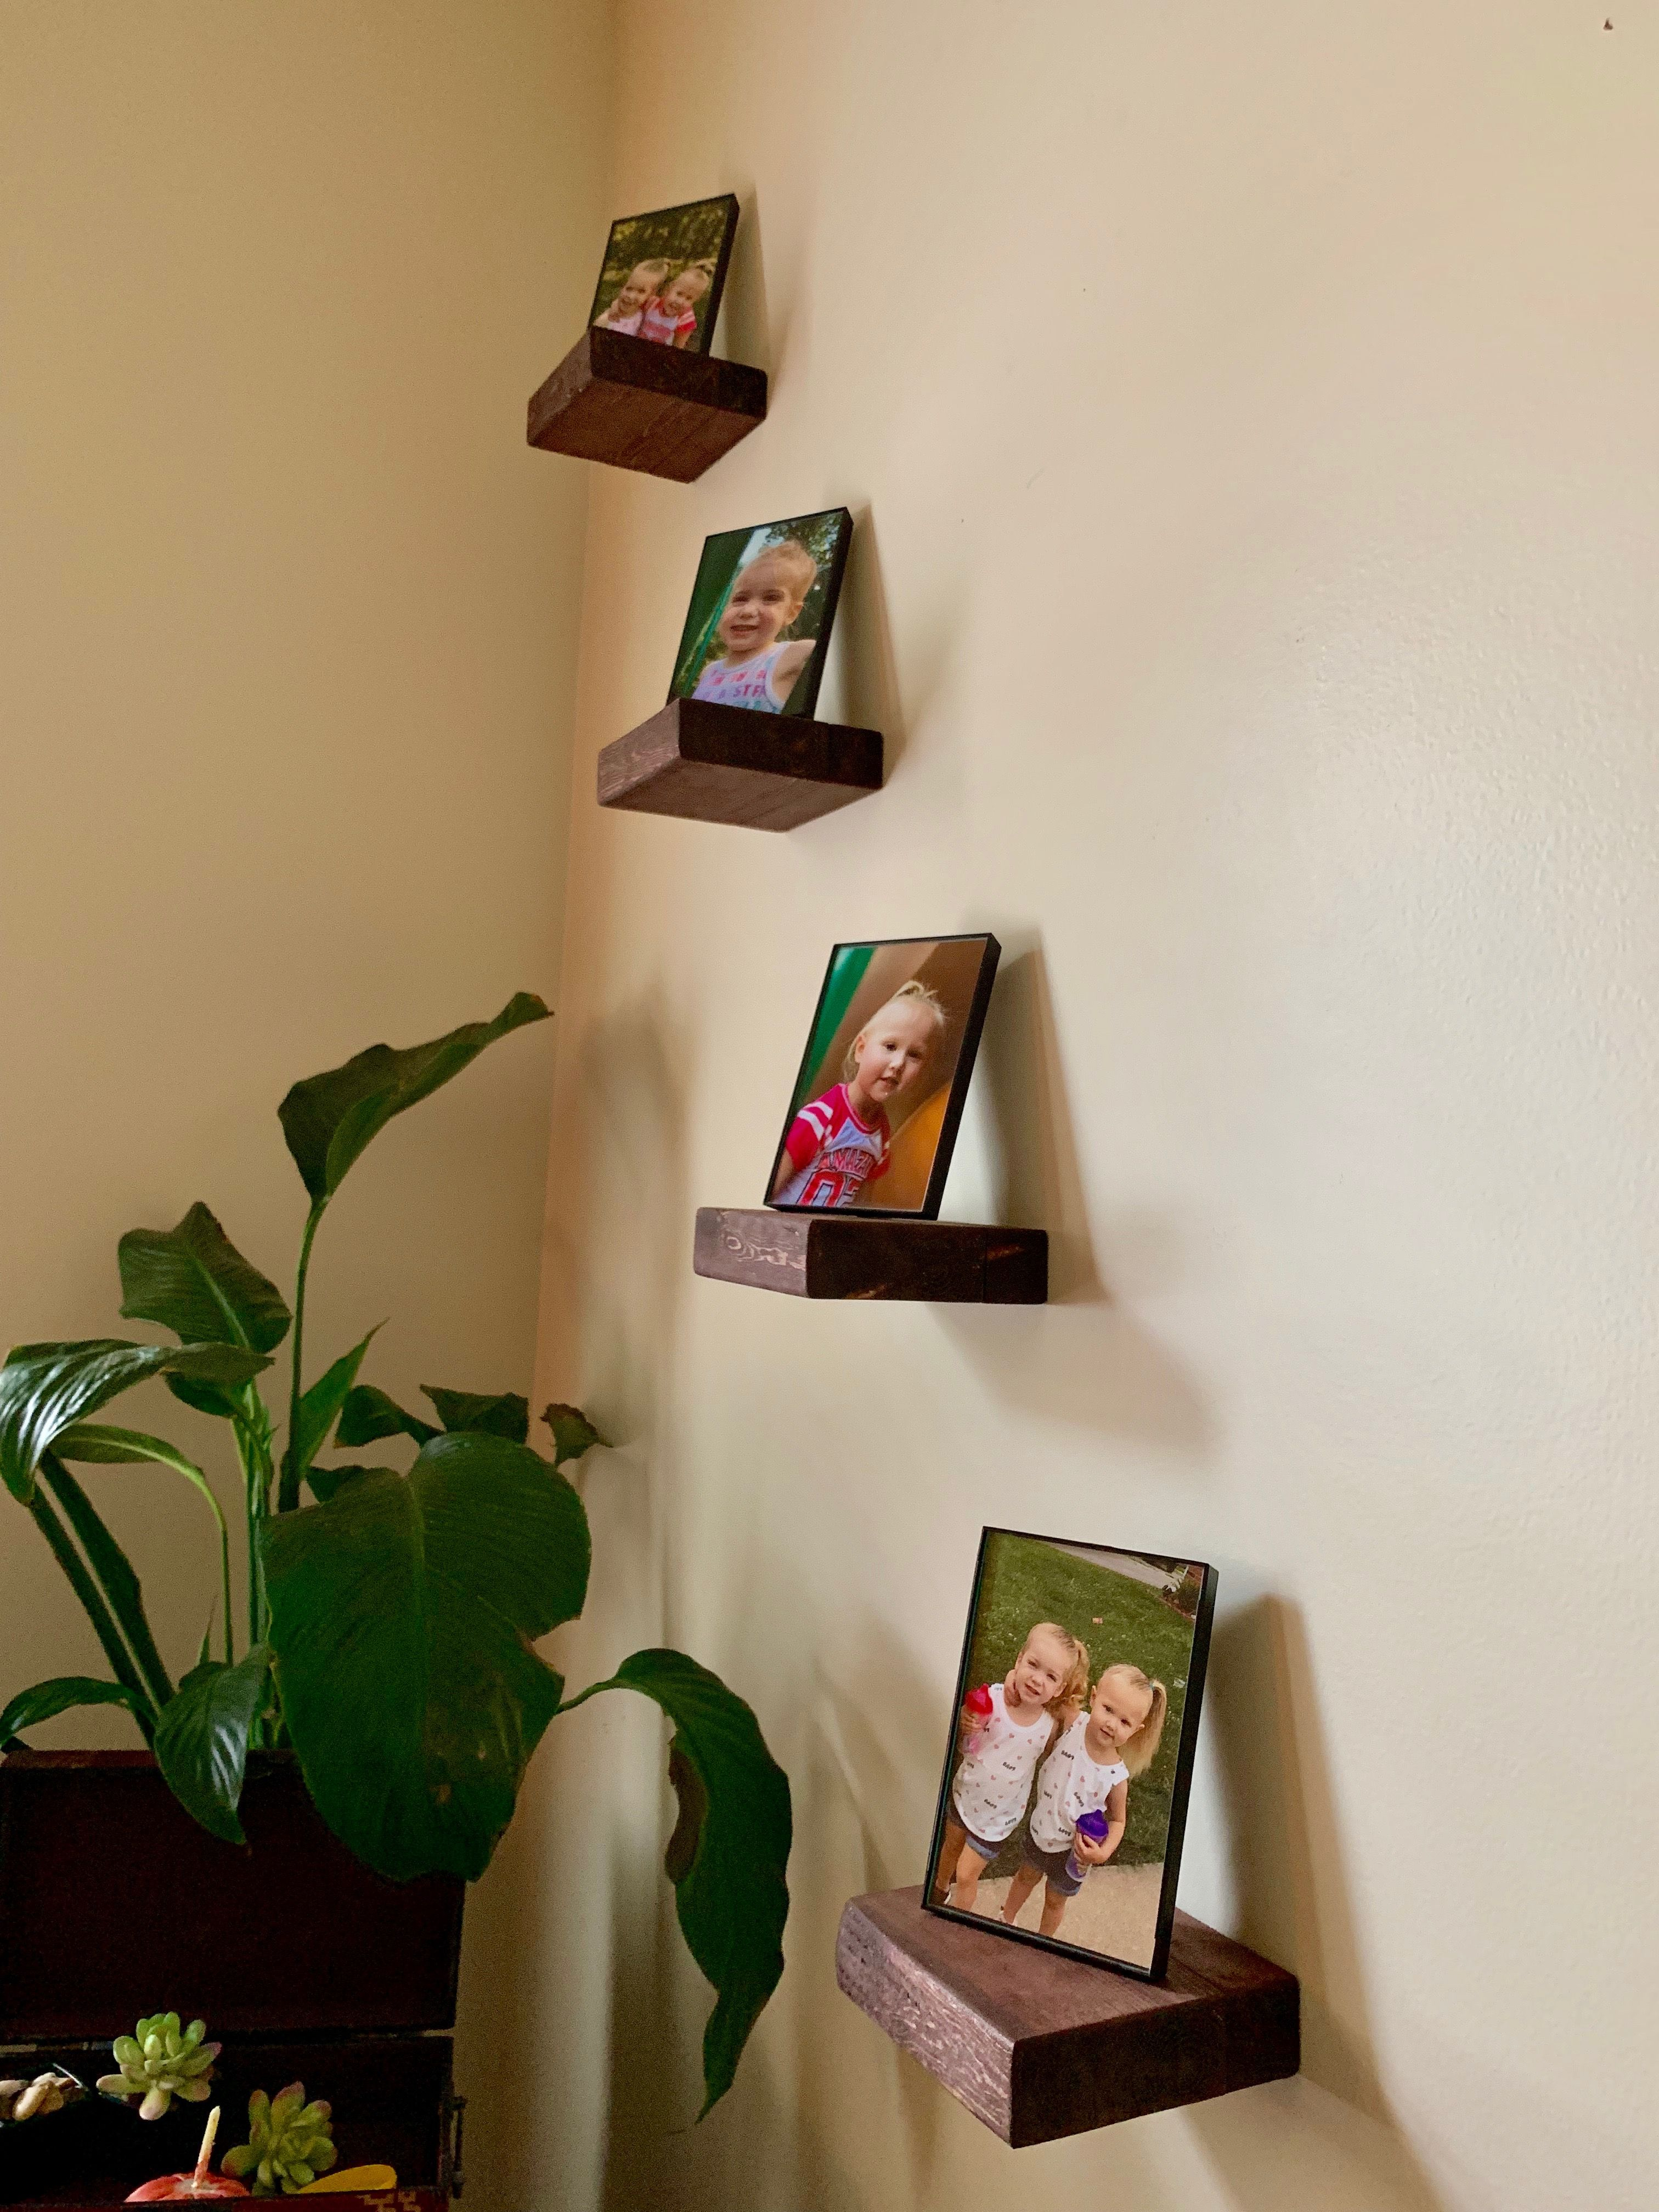 Handcrafted Floating Wood Block Shelves Great For Decoration